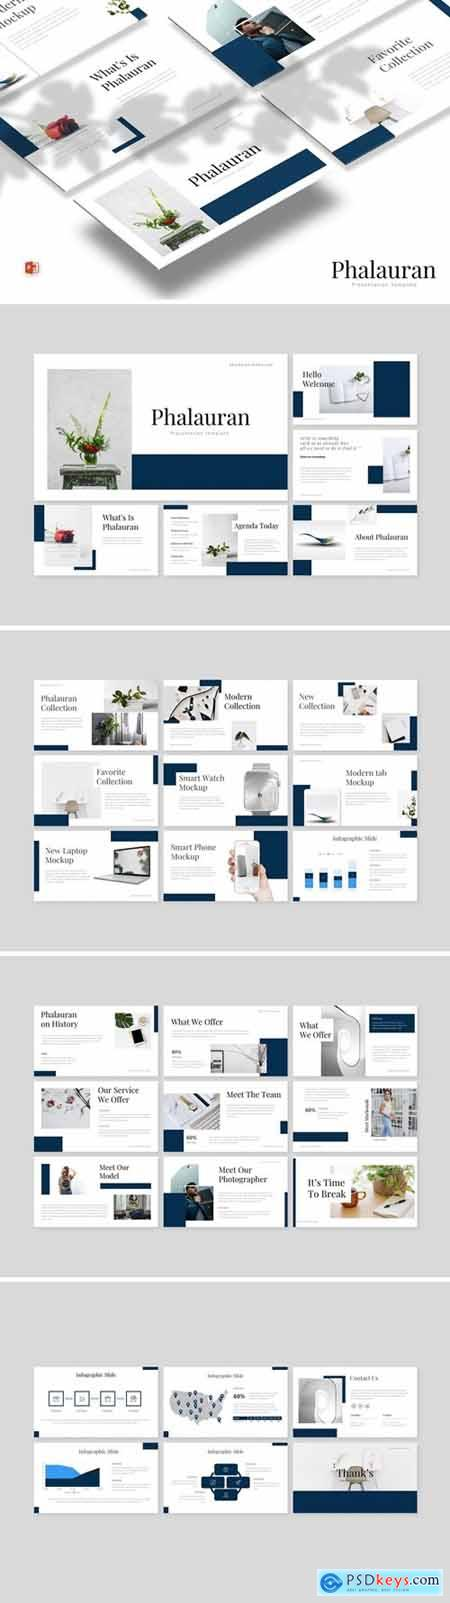 Phalauran Powerpoint, Keynote and Google Slides Templates